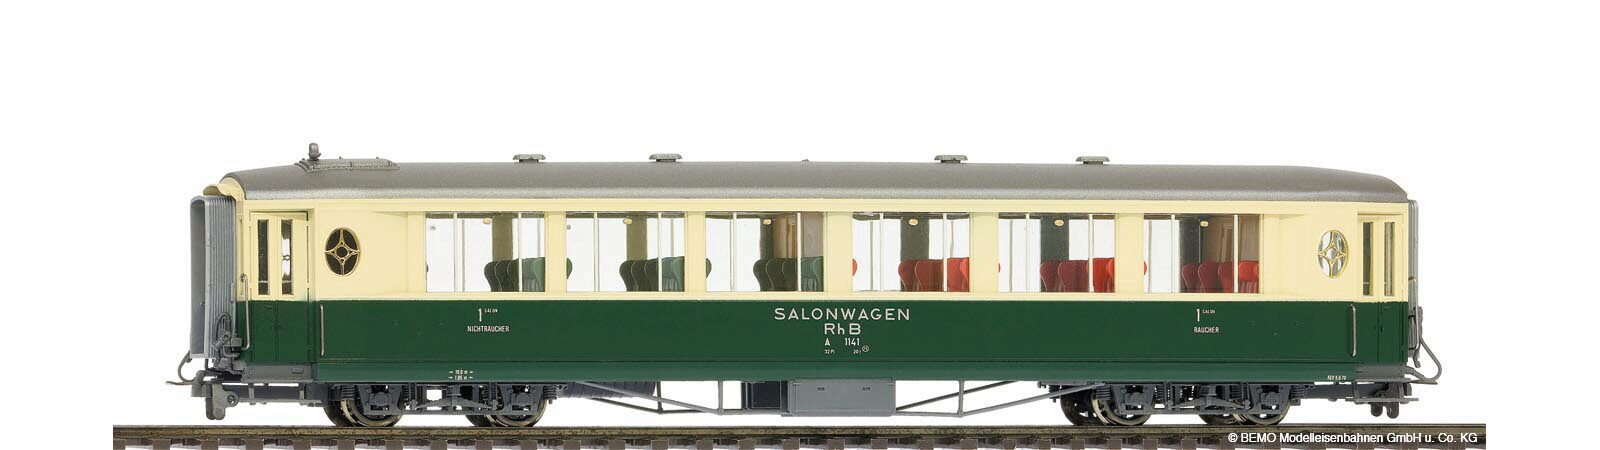 Bemo 3272101 RhB As 1141 Salonwagen